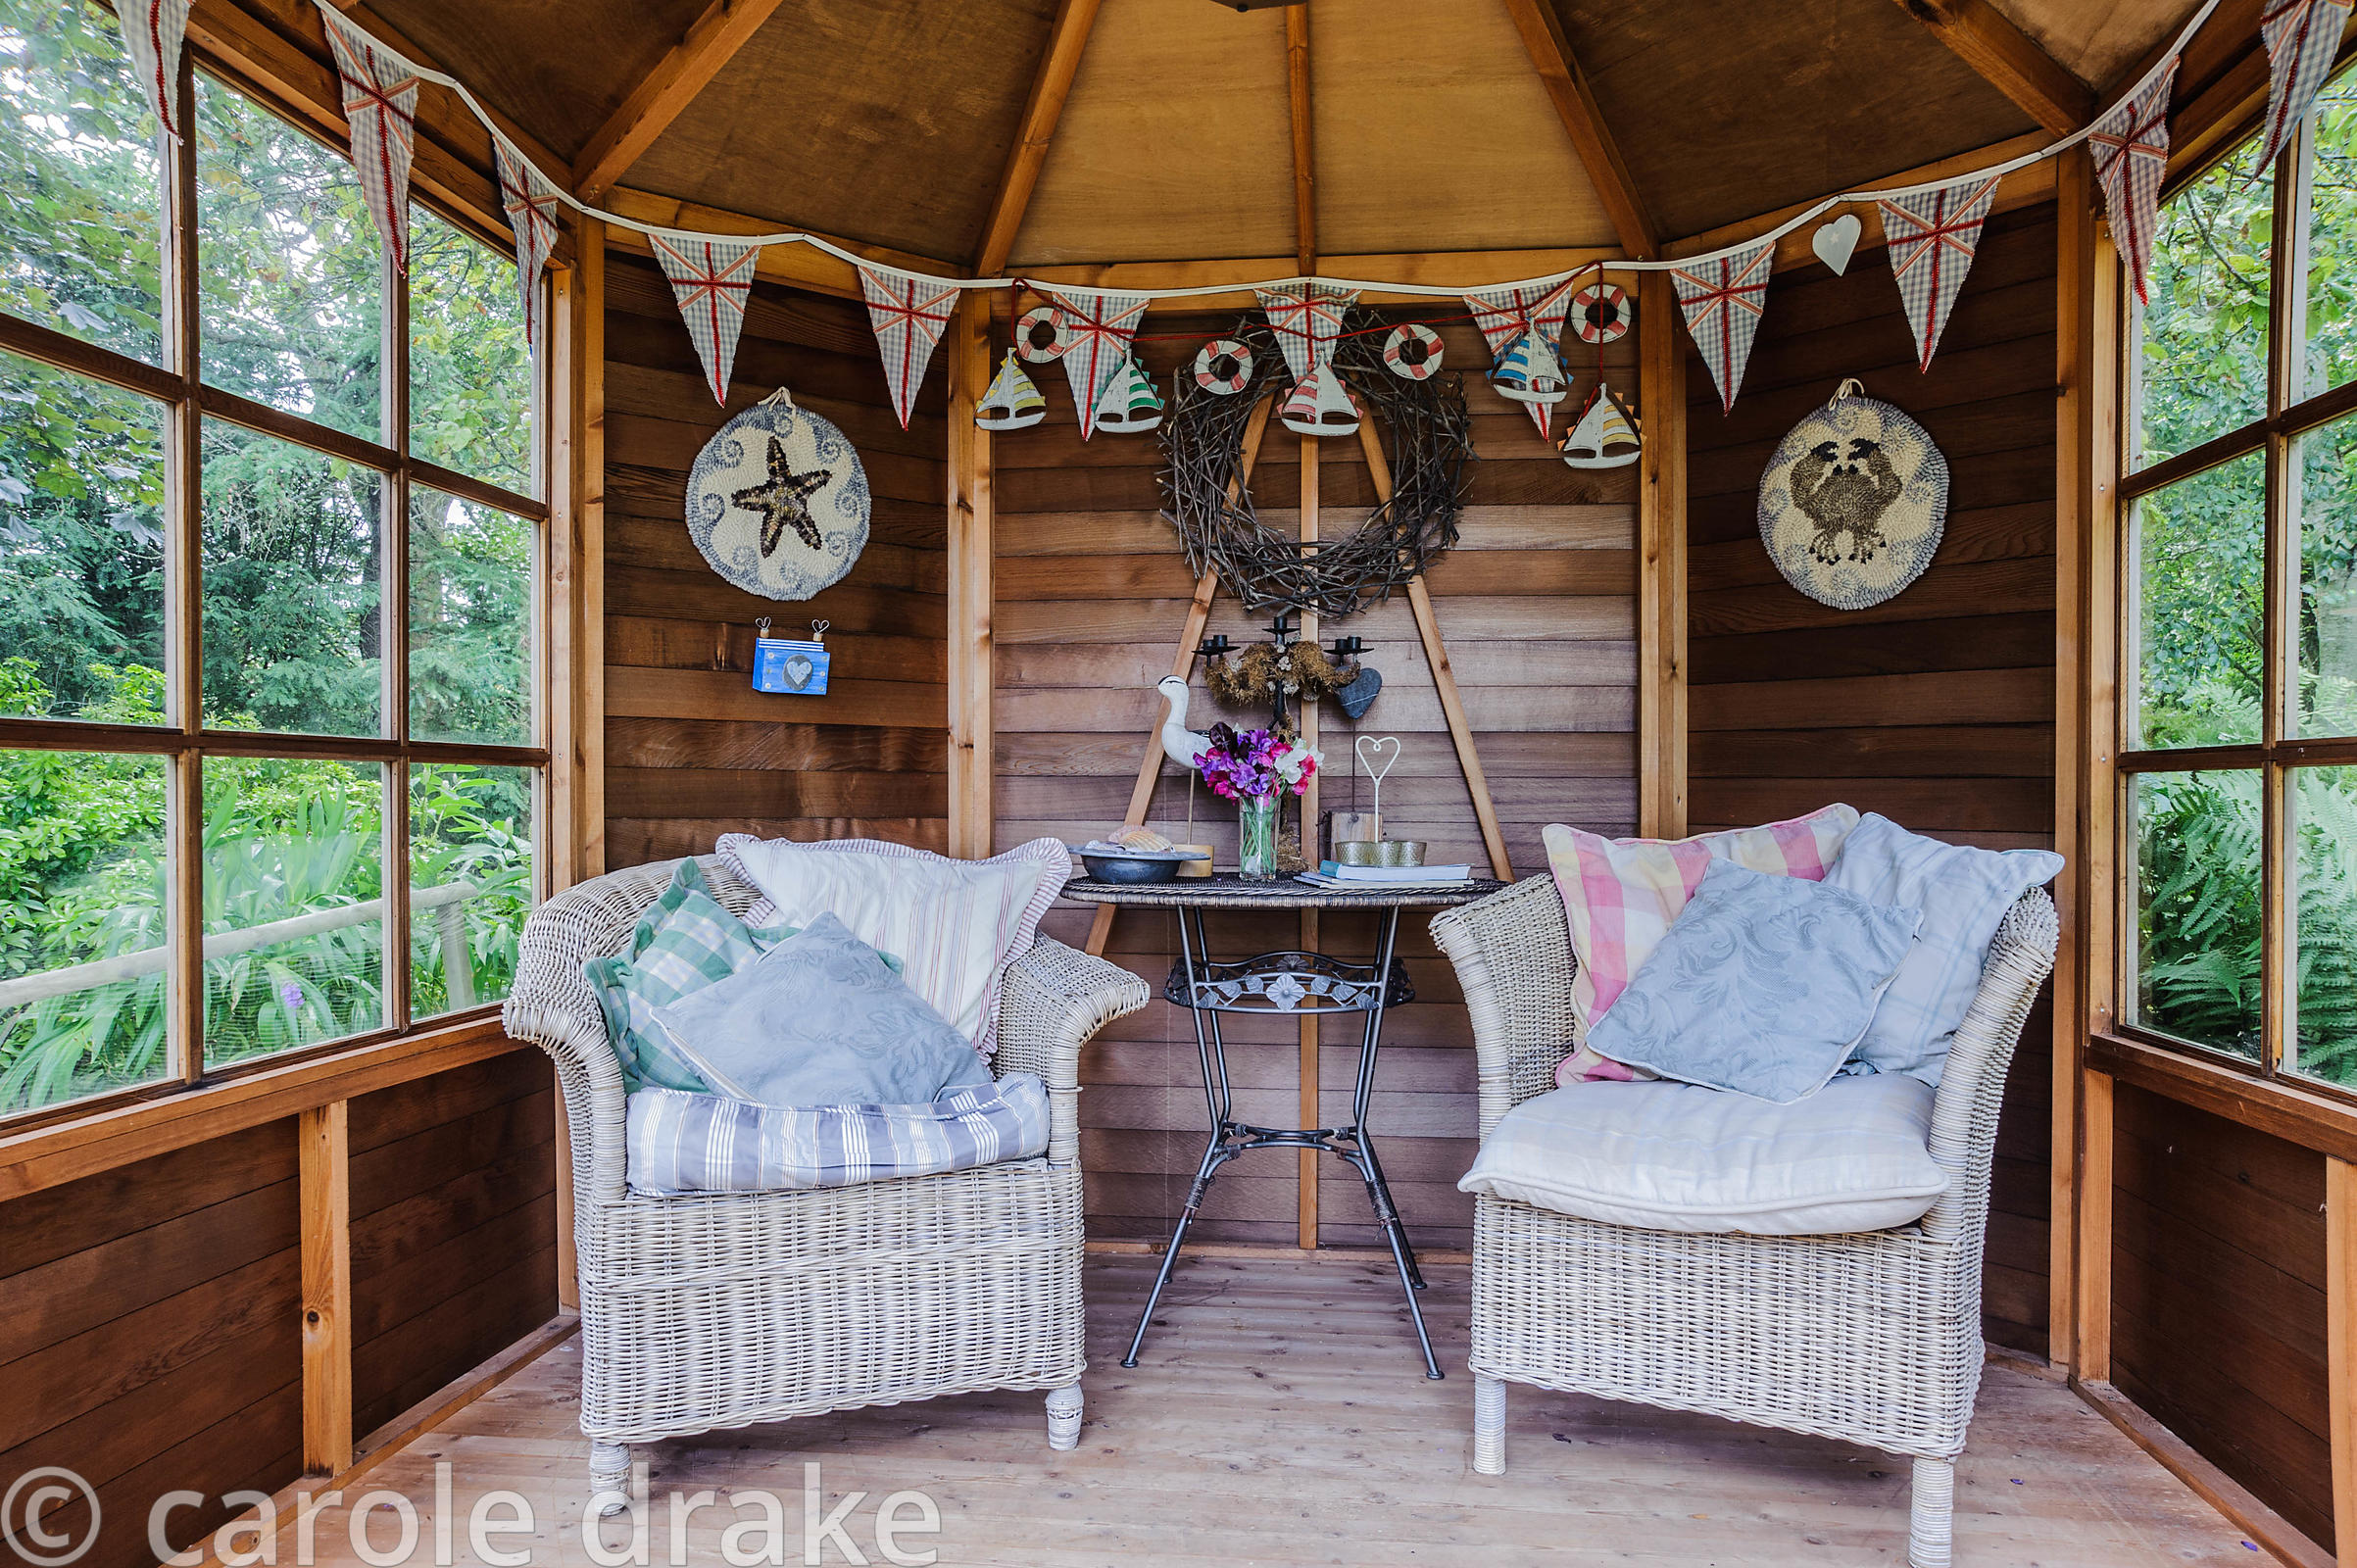 Summerhouse decorated with seaside themed objects including starfish, boats, birds, shells and bunting.